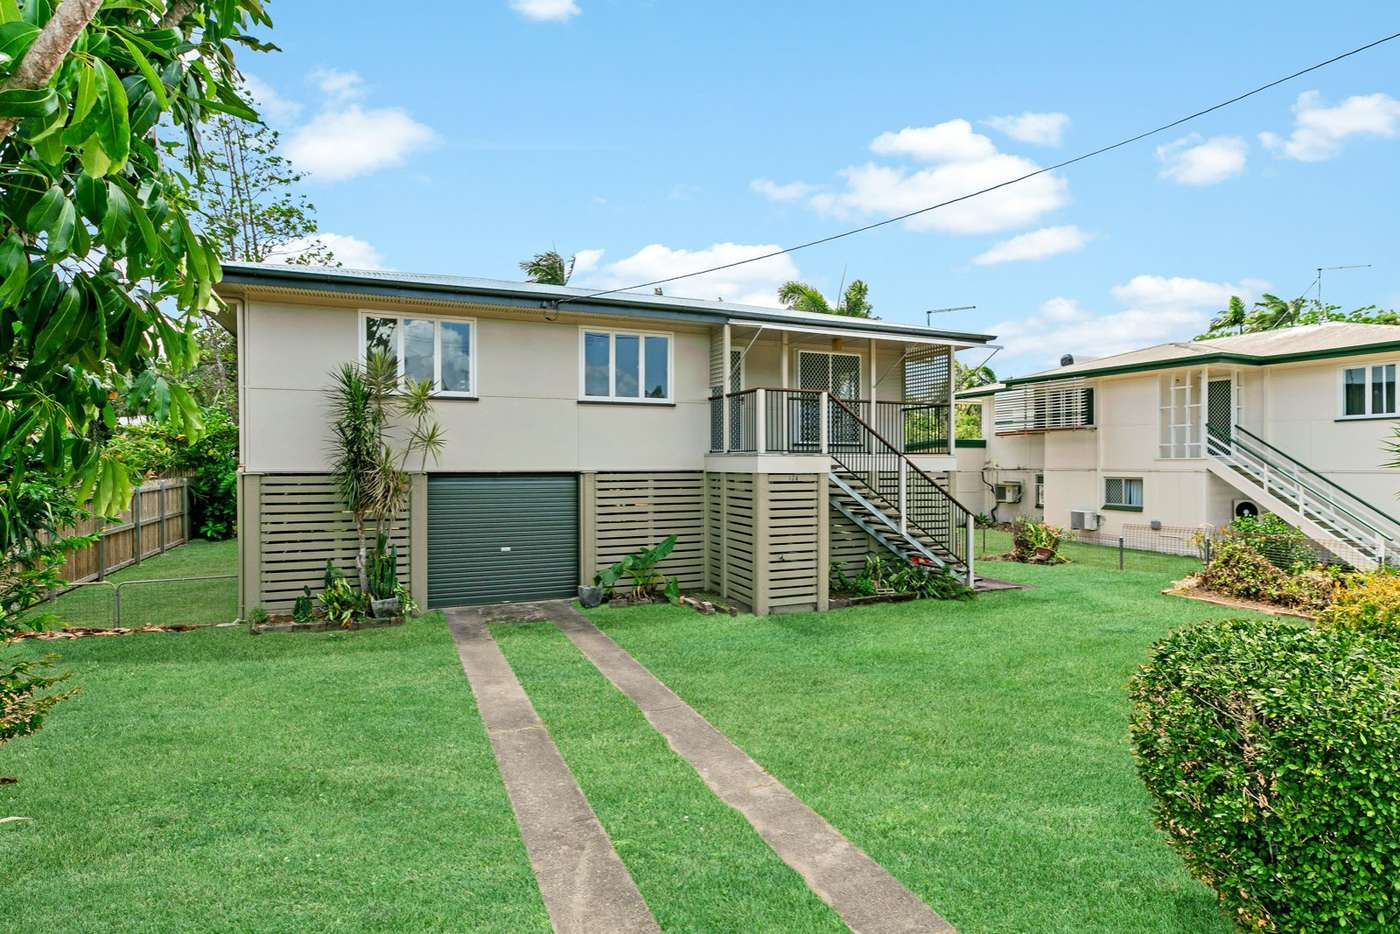 Main view of Homely house listing, 124 Wilkinson Street, Manunda QLD 4870